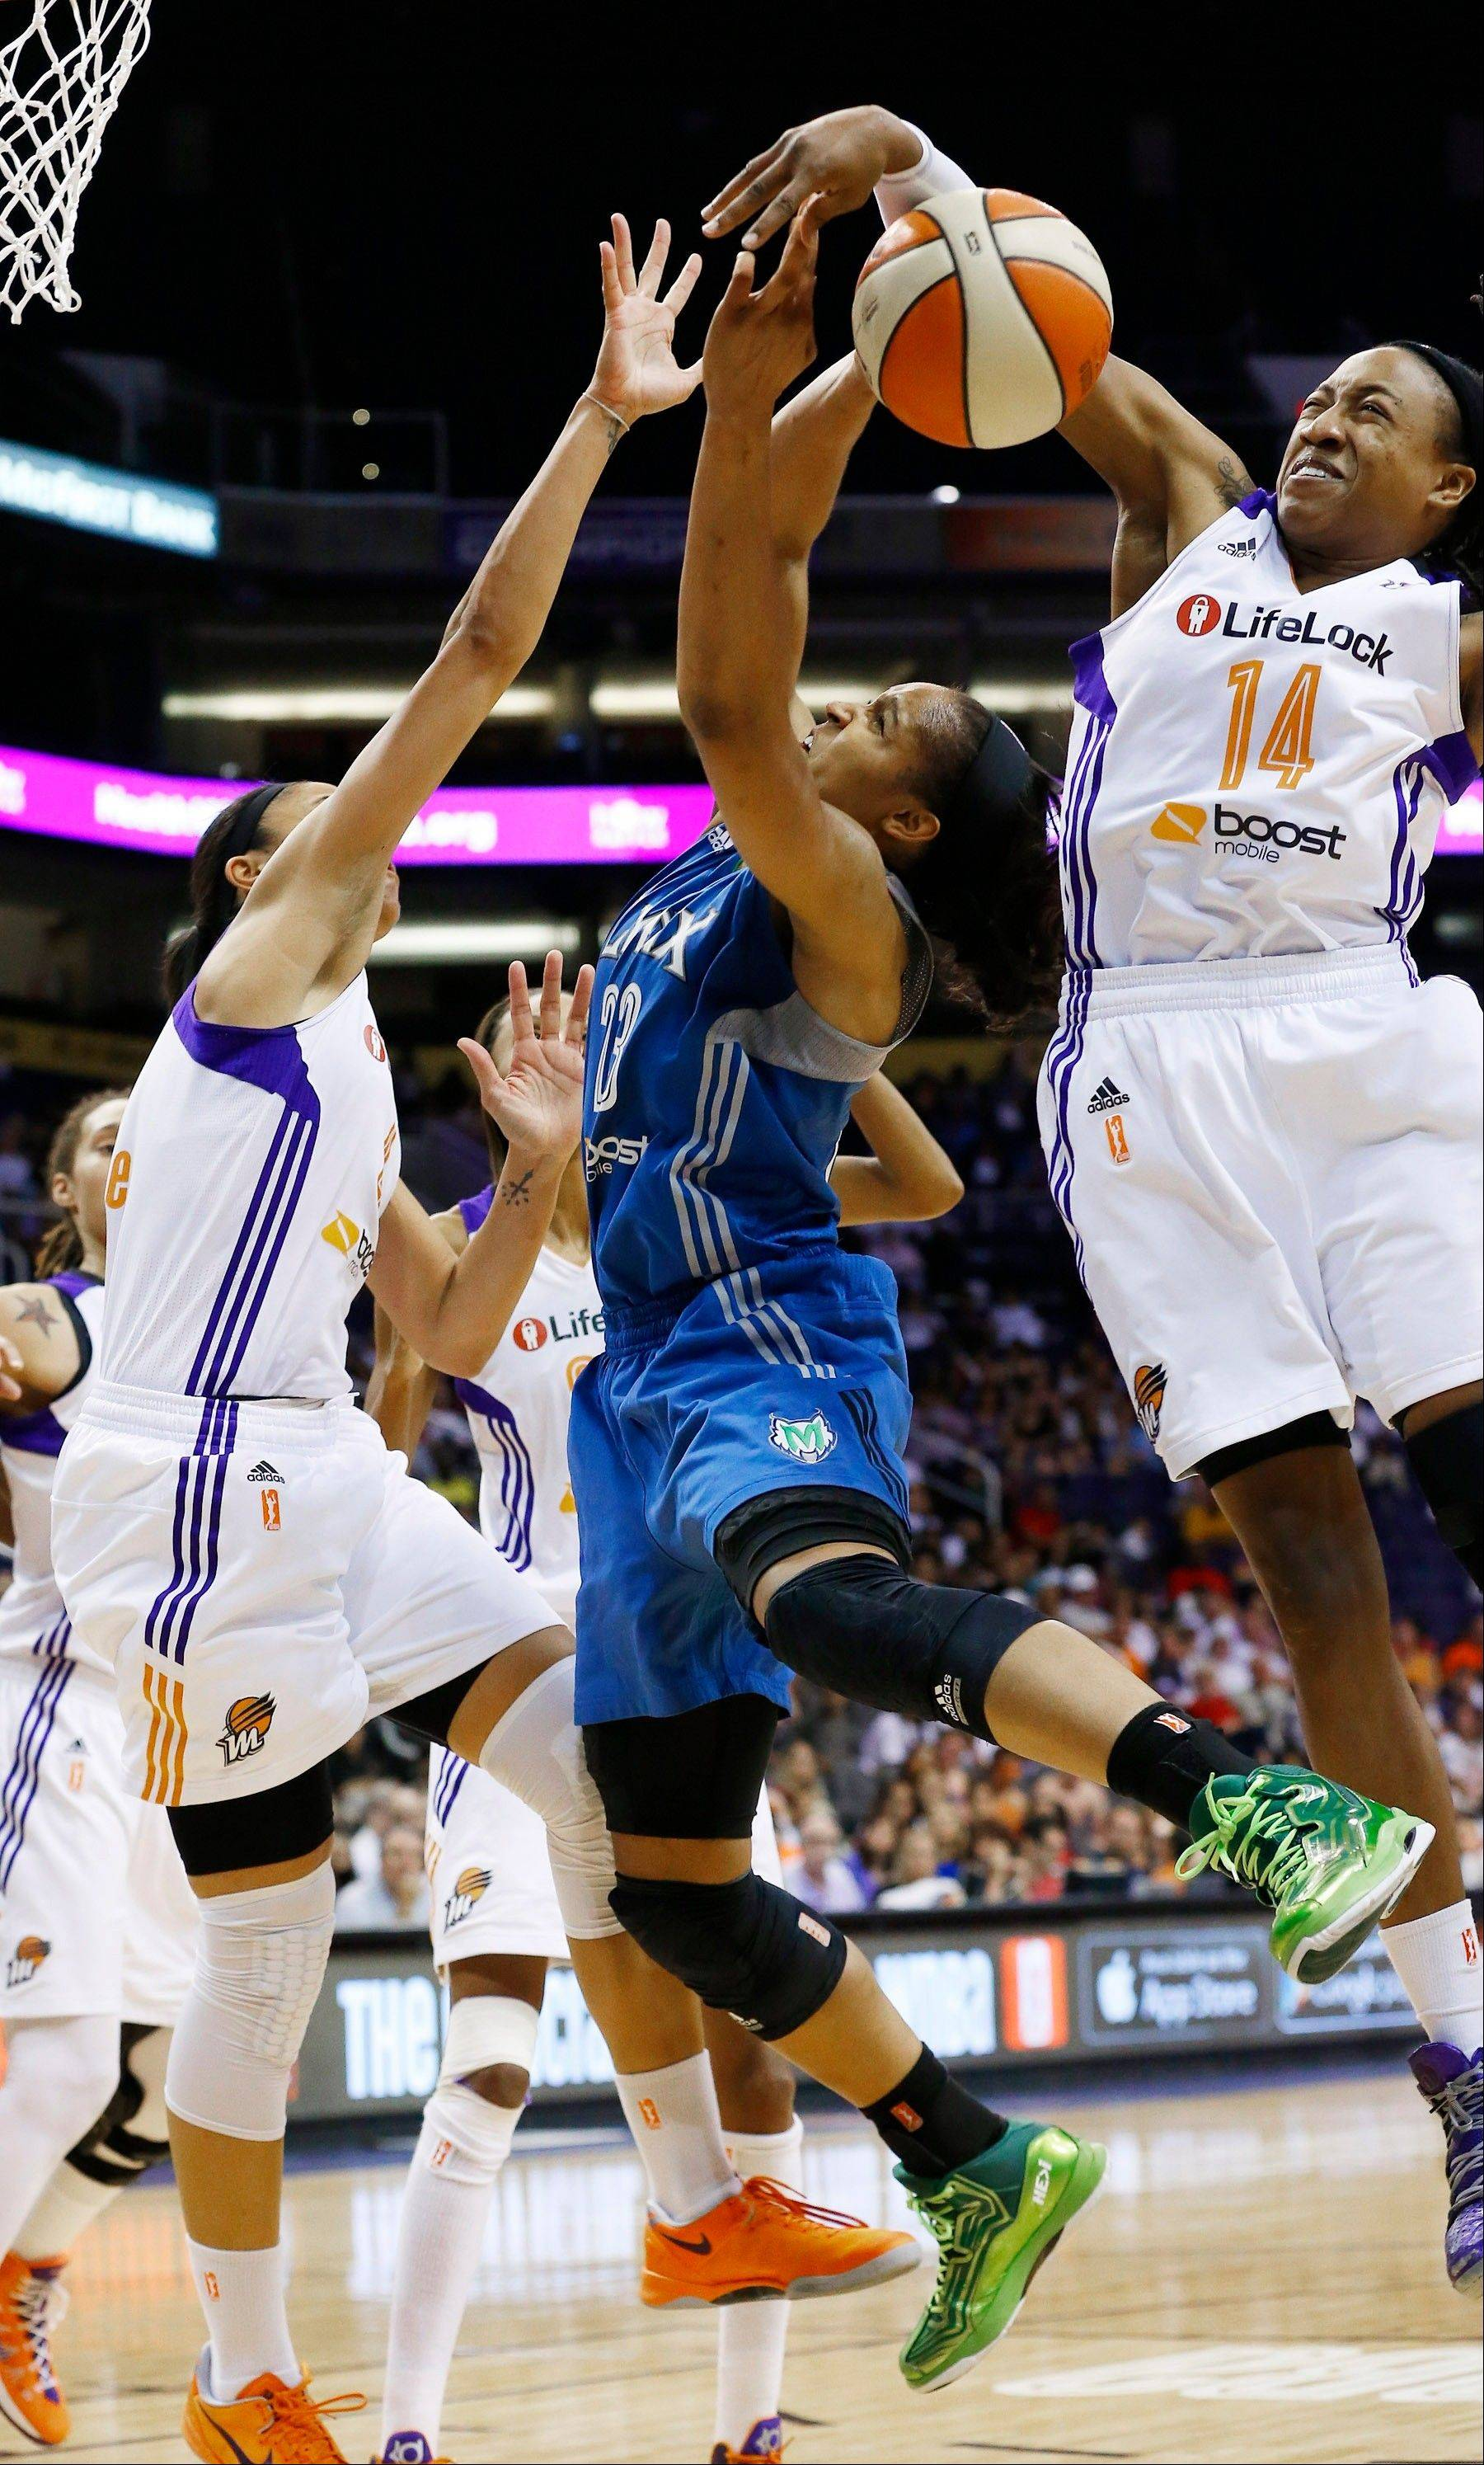 The Minnesota Lynx�s Maya Moore, center, is one of the most impressive WNBA players that Patricia Babcock McGraw has seen this season.